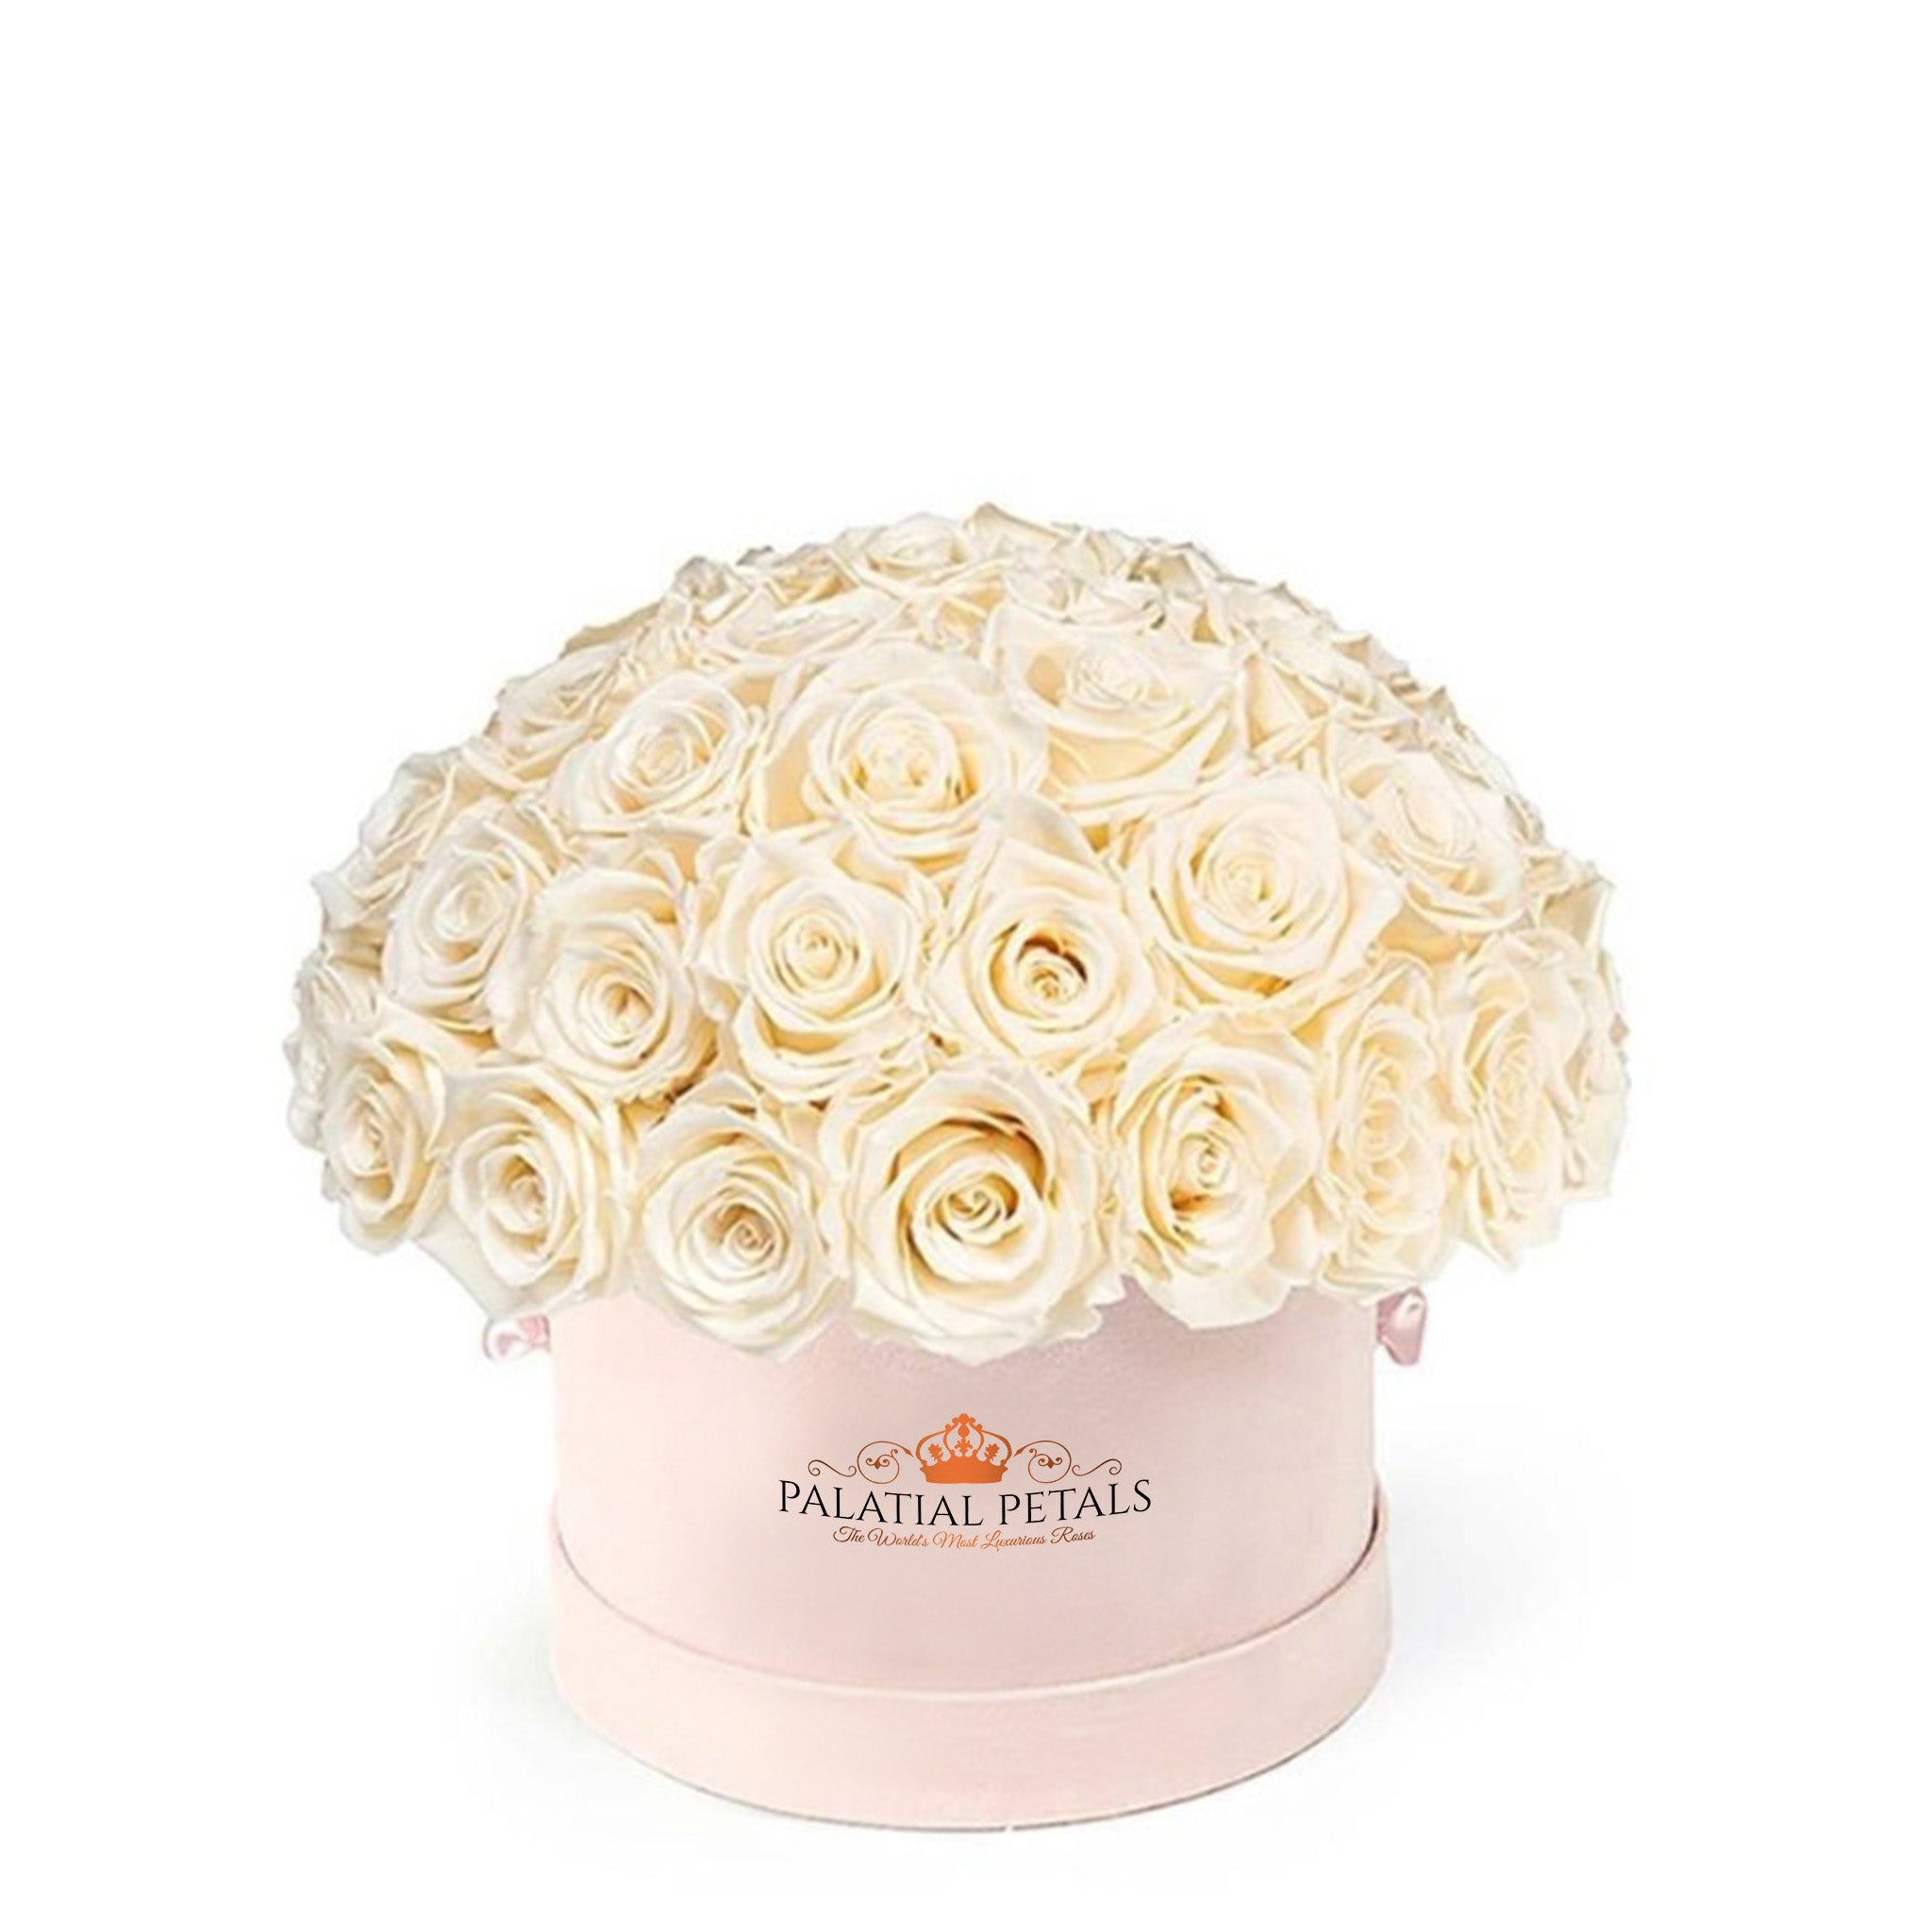 Blush Roses That Last A Year - Classic Rose